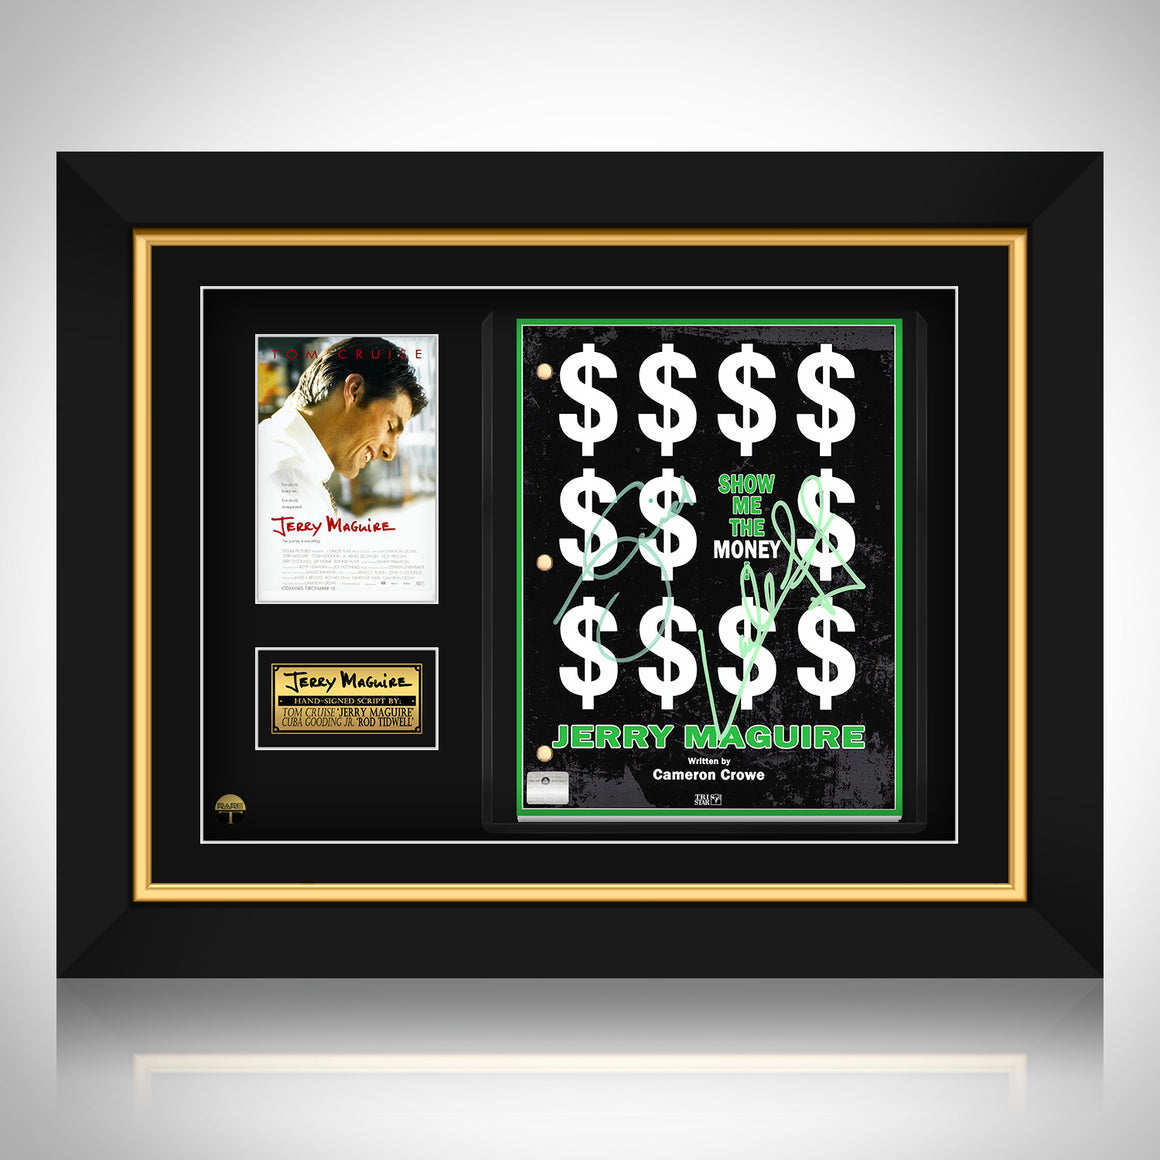 Jerry Maguire - Hand-Signed Script by Tom Cruise & Cuba Gooding Jr. Custom frame